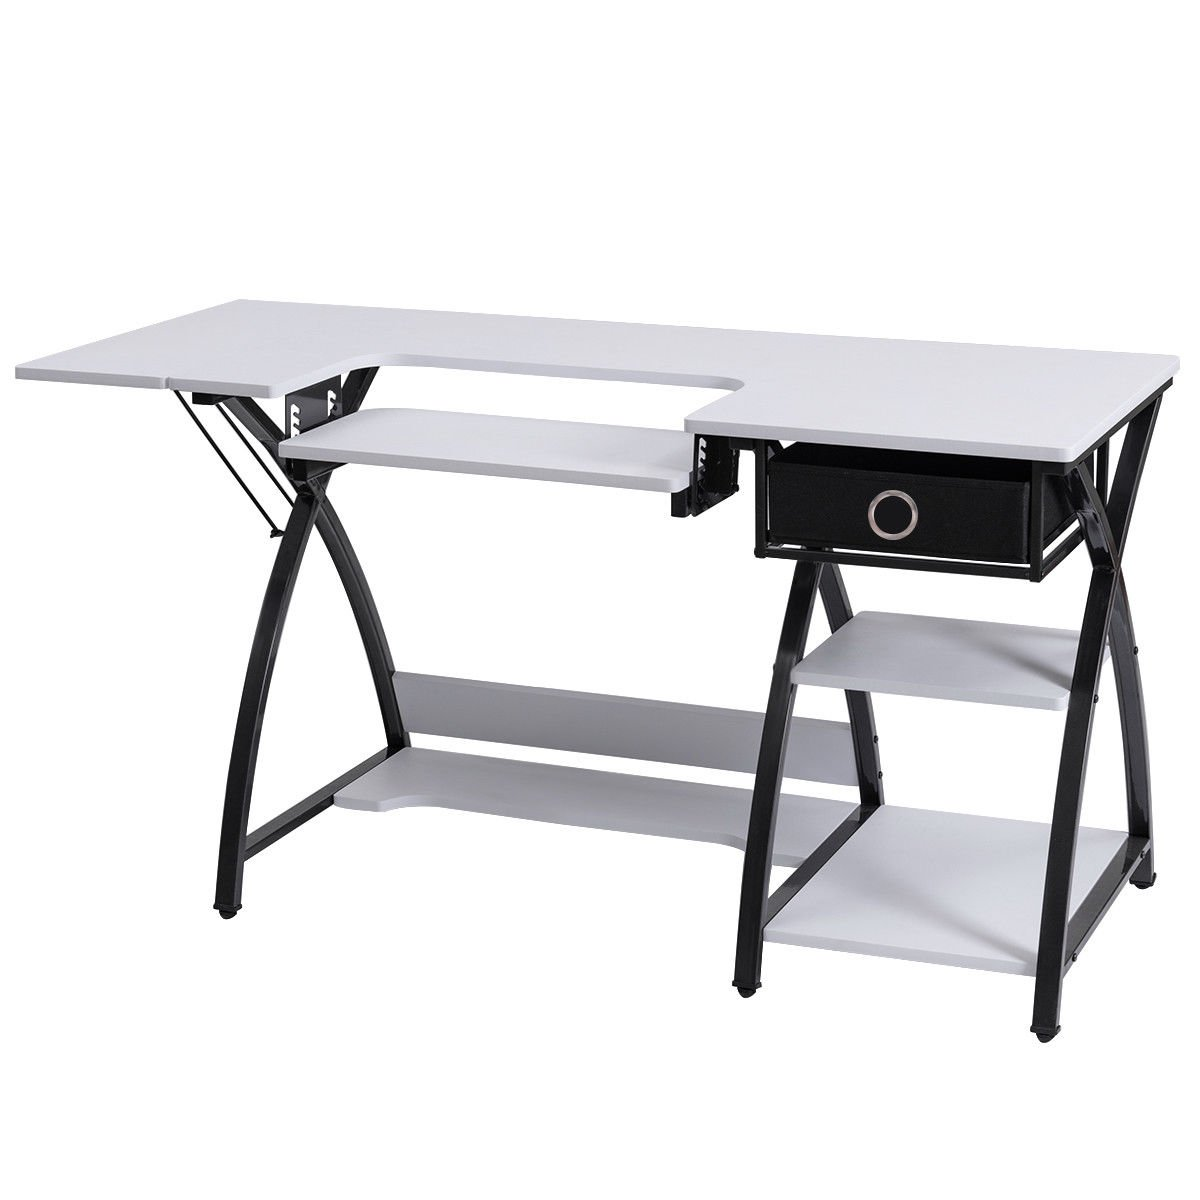 Costway Home Indoor Adjustable Sewing Craft Table Sewing Machine Sturdy Computer Desk with Drawer & Shleves